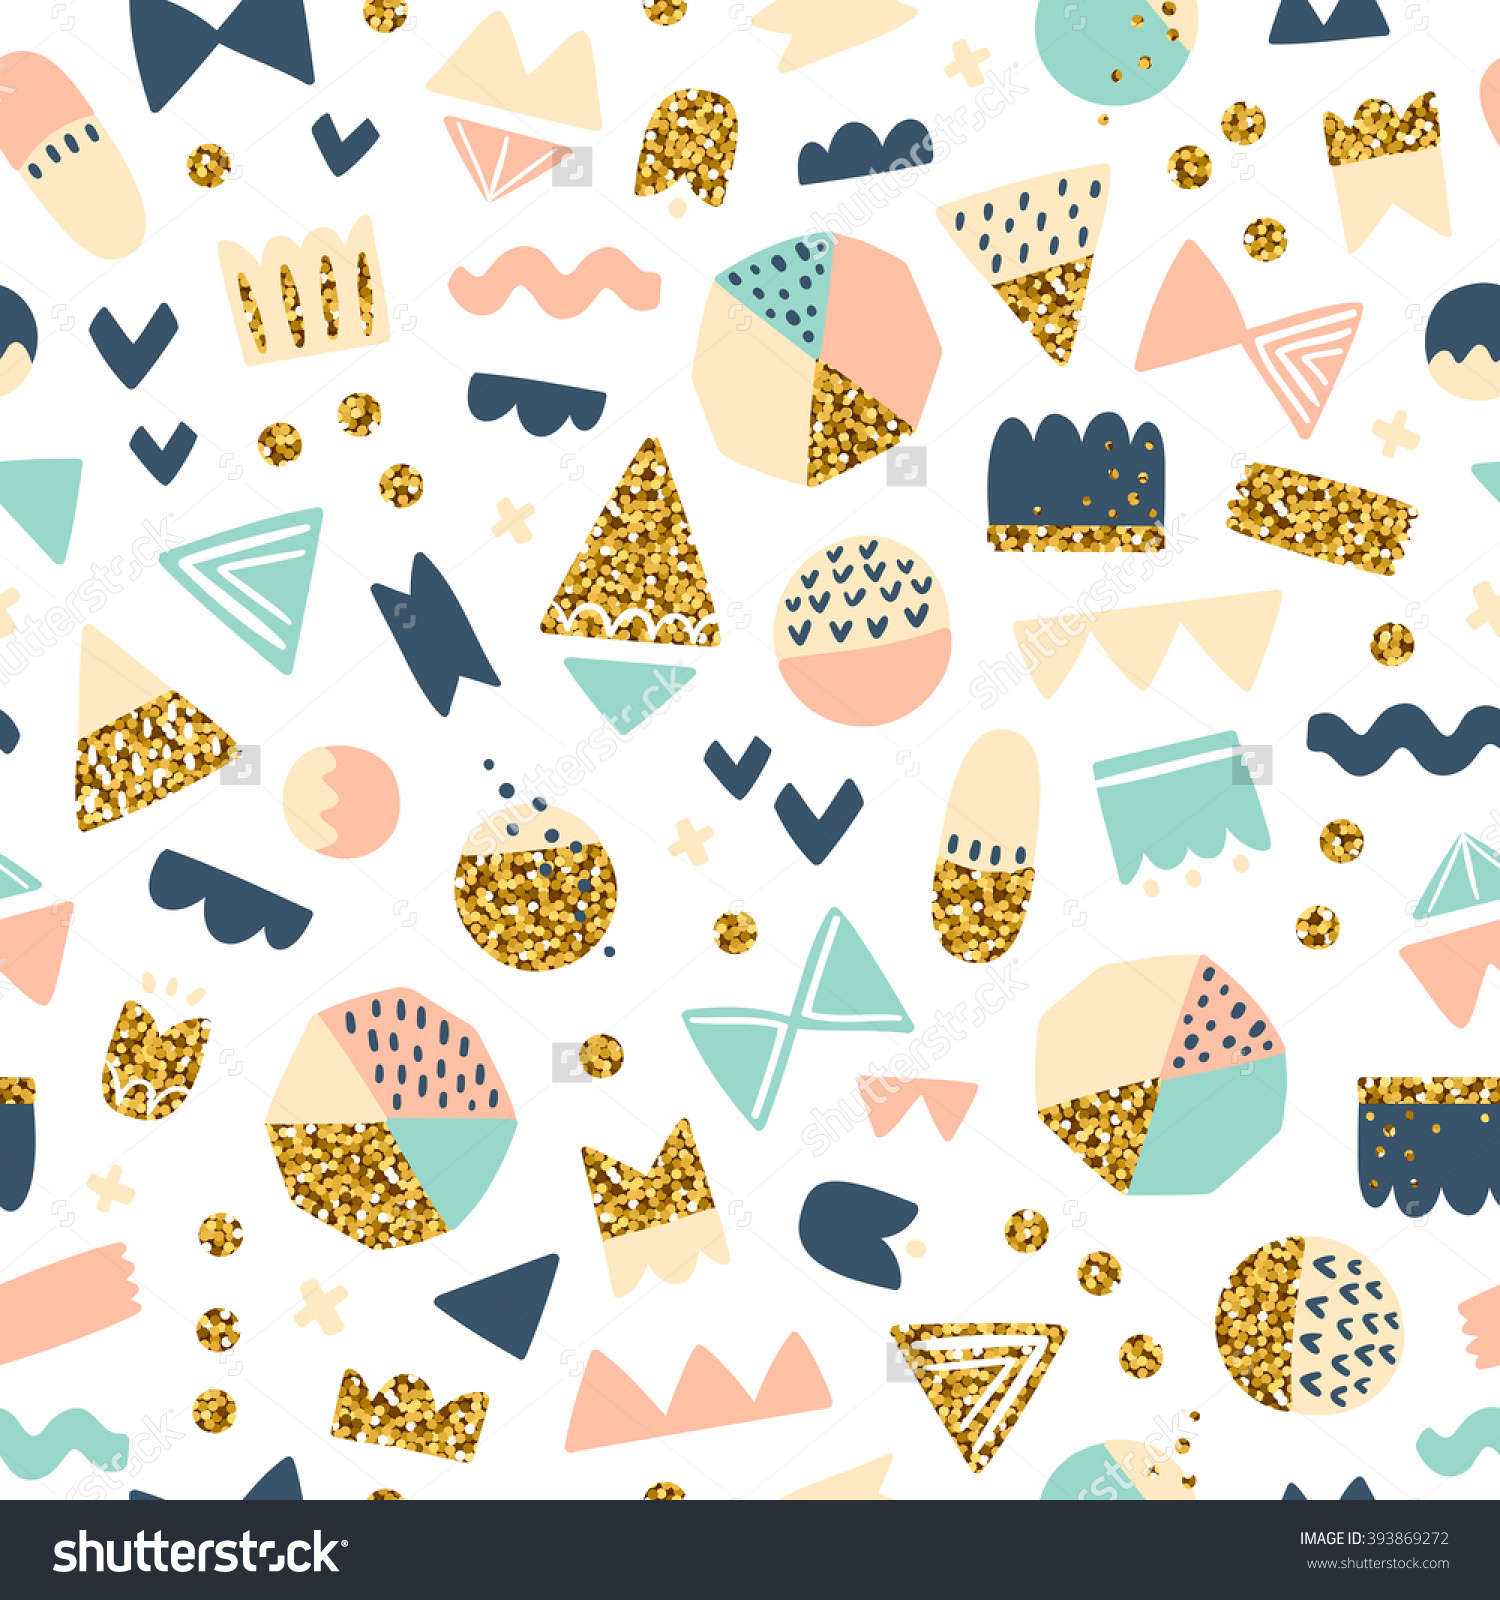 Fun Shapes Seamless Pattern With Gold Glitter Effect On White.